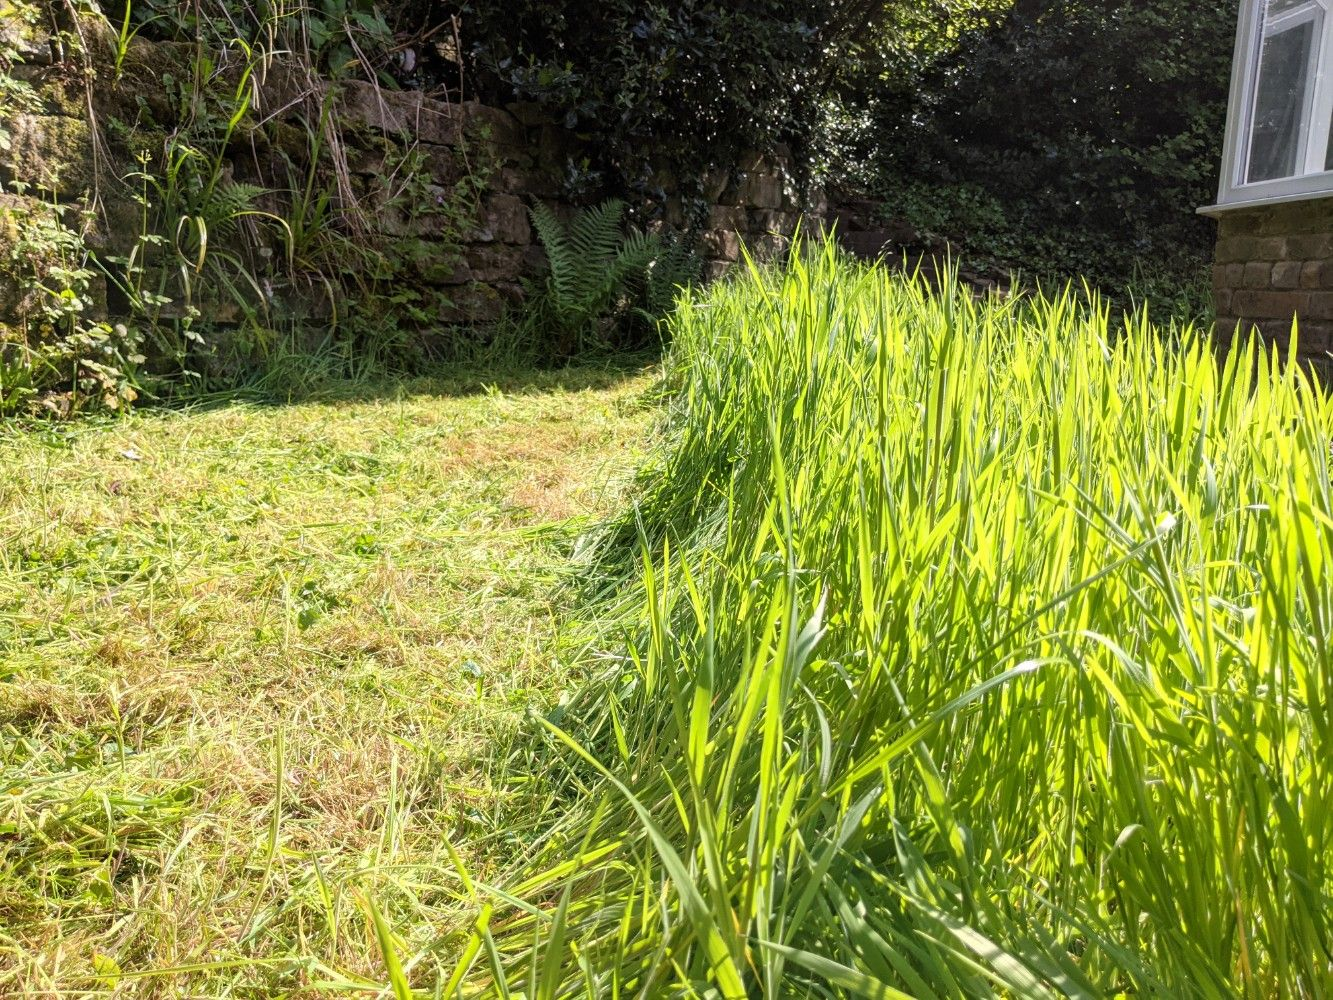 A side-by-side photo of the freshly mown lawn, showing a very stark contrast between the freshly mown grass, and the very tall grass that has not yet been mown, taken from a lower angle to show the height of the grass before mowing